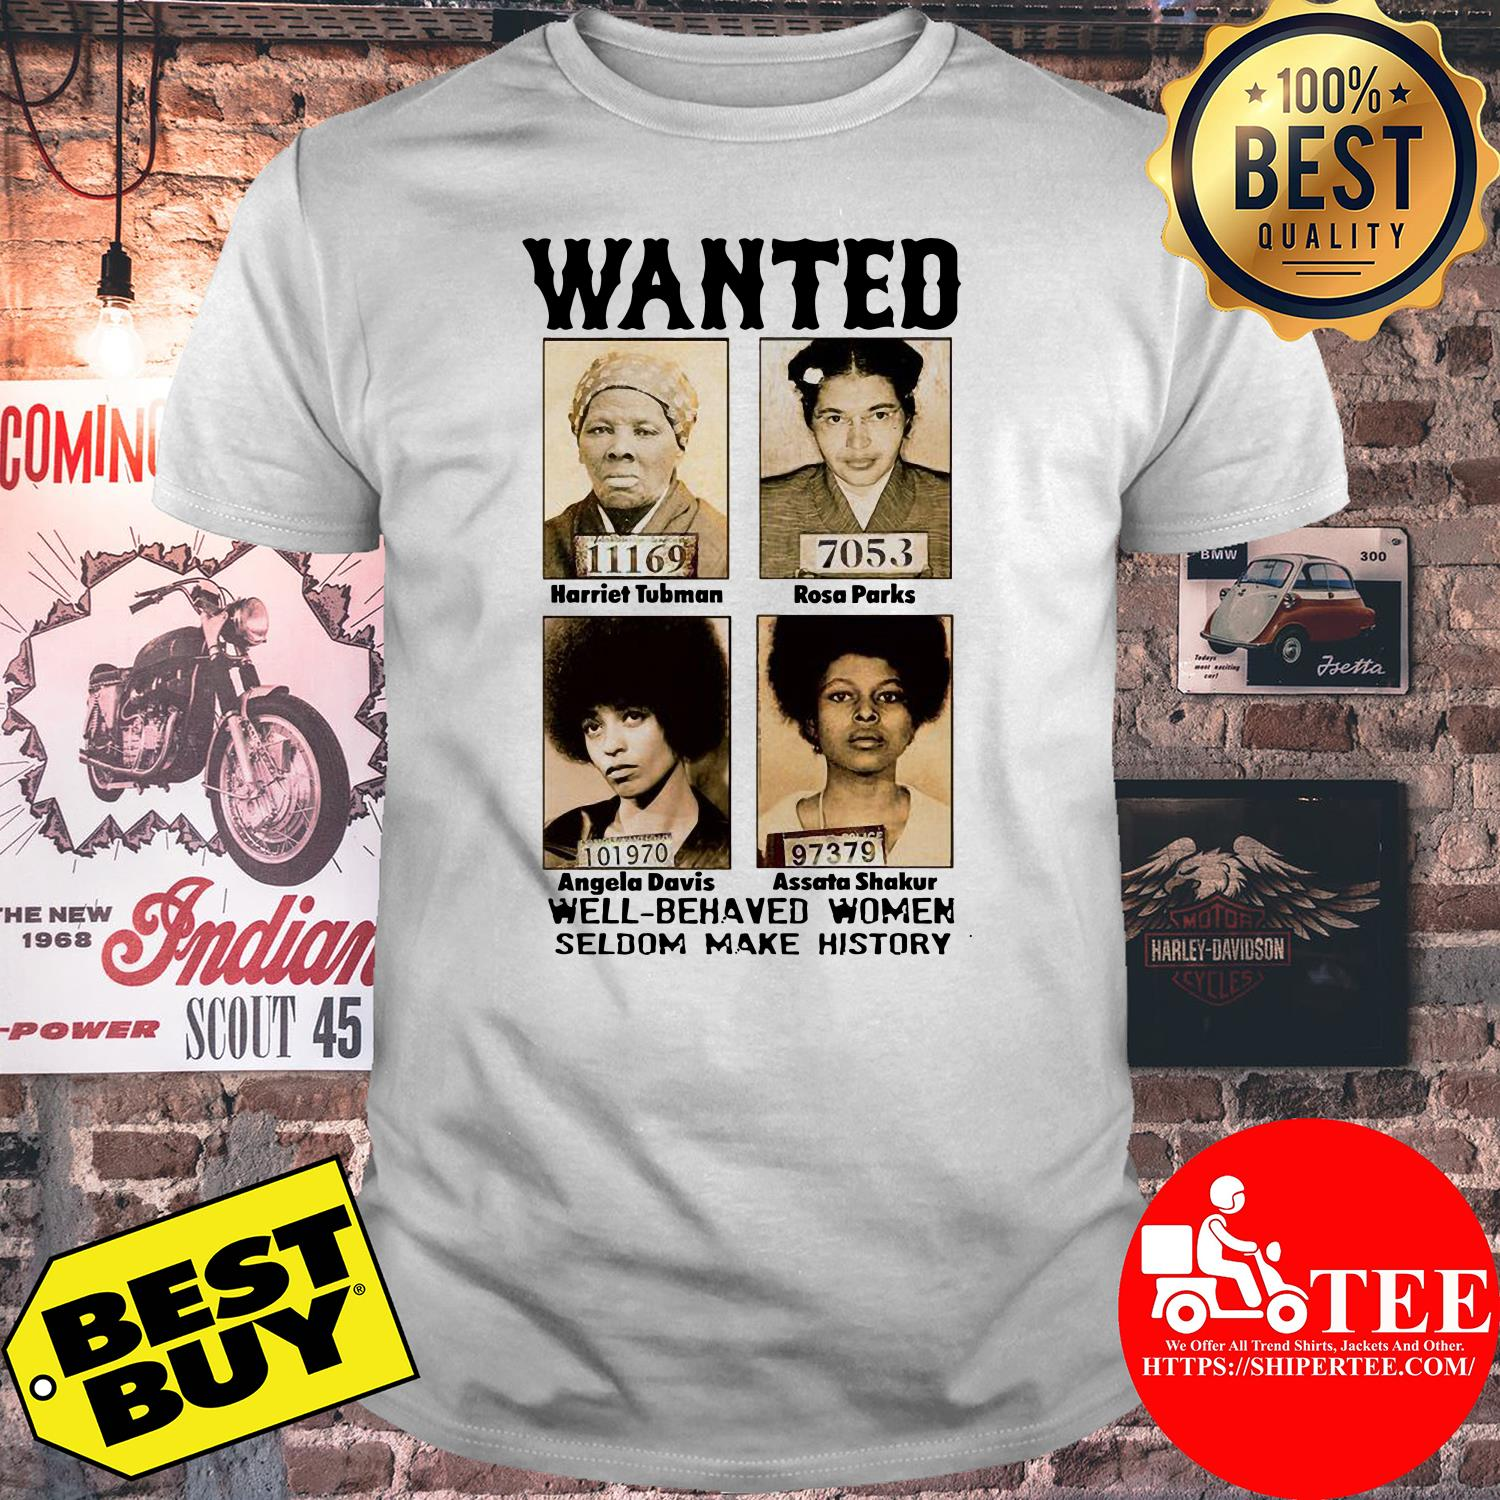 Wanted well-behaved women seldom make history shirt